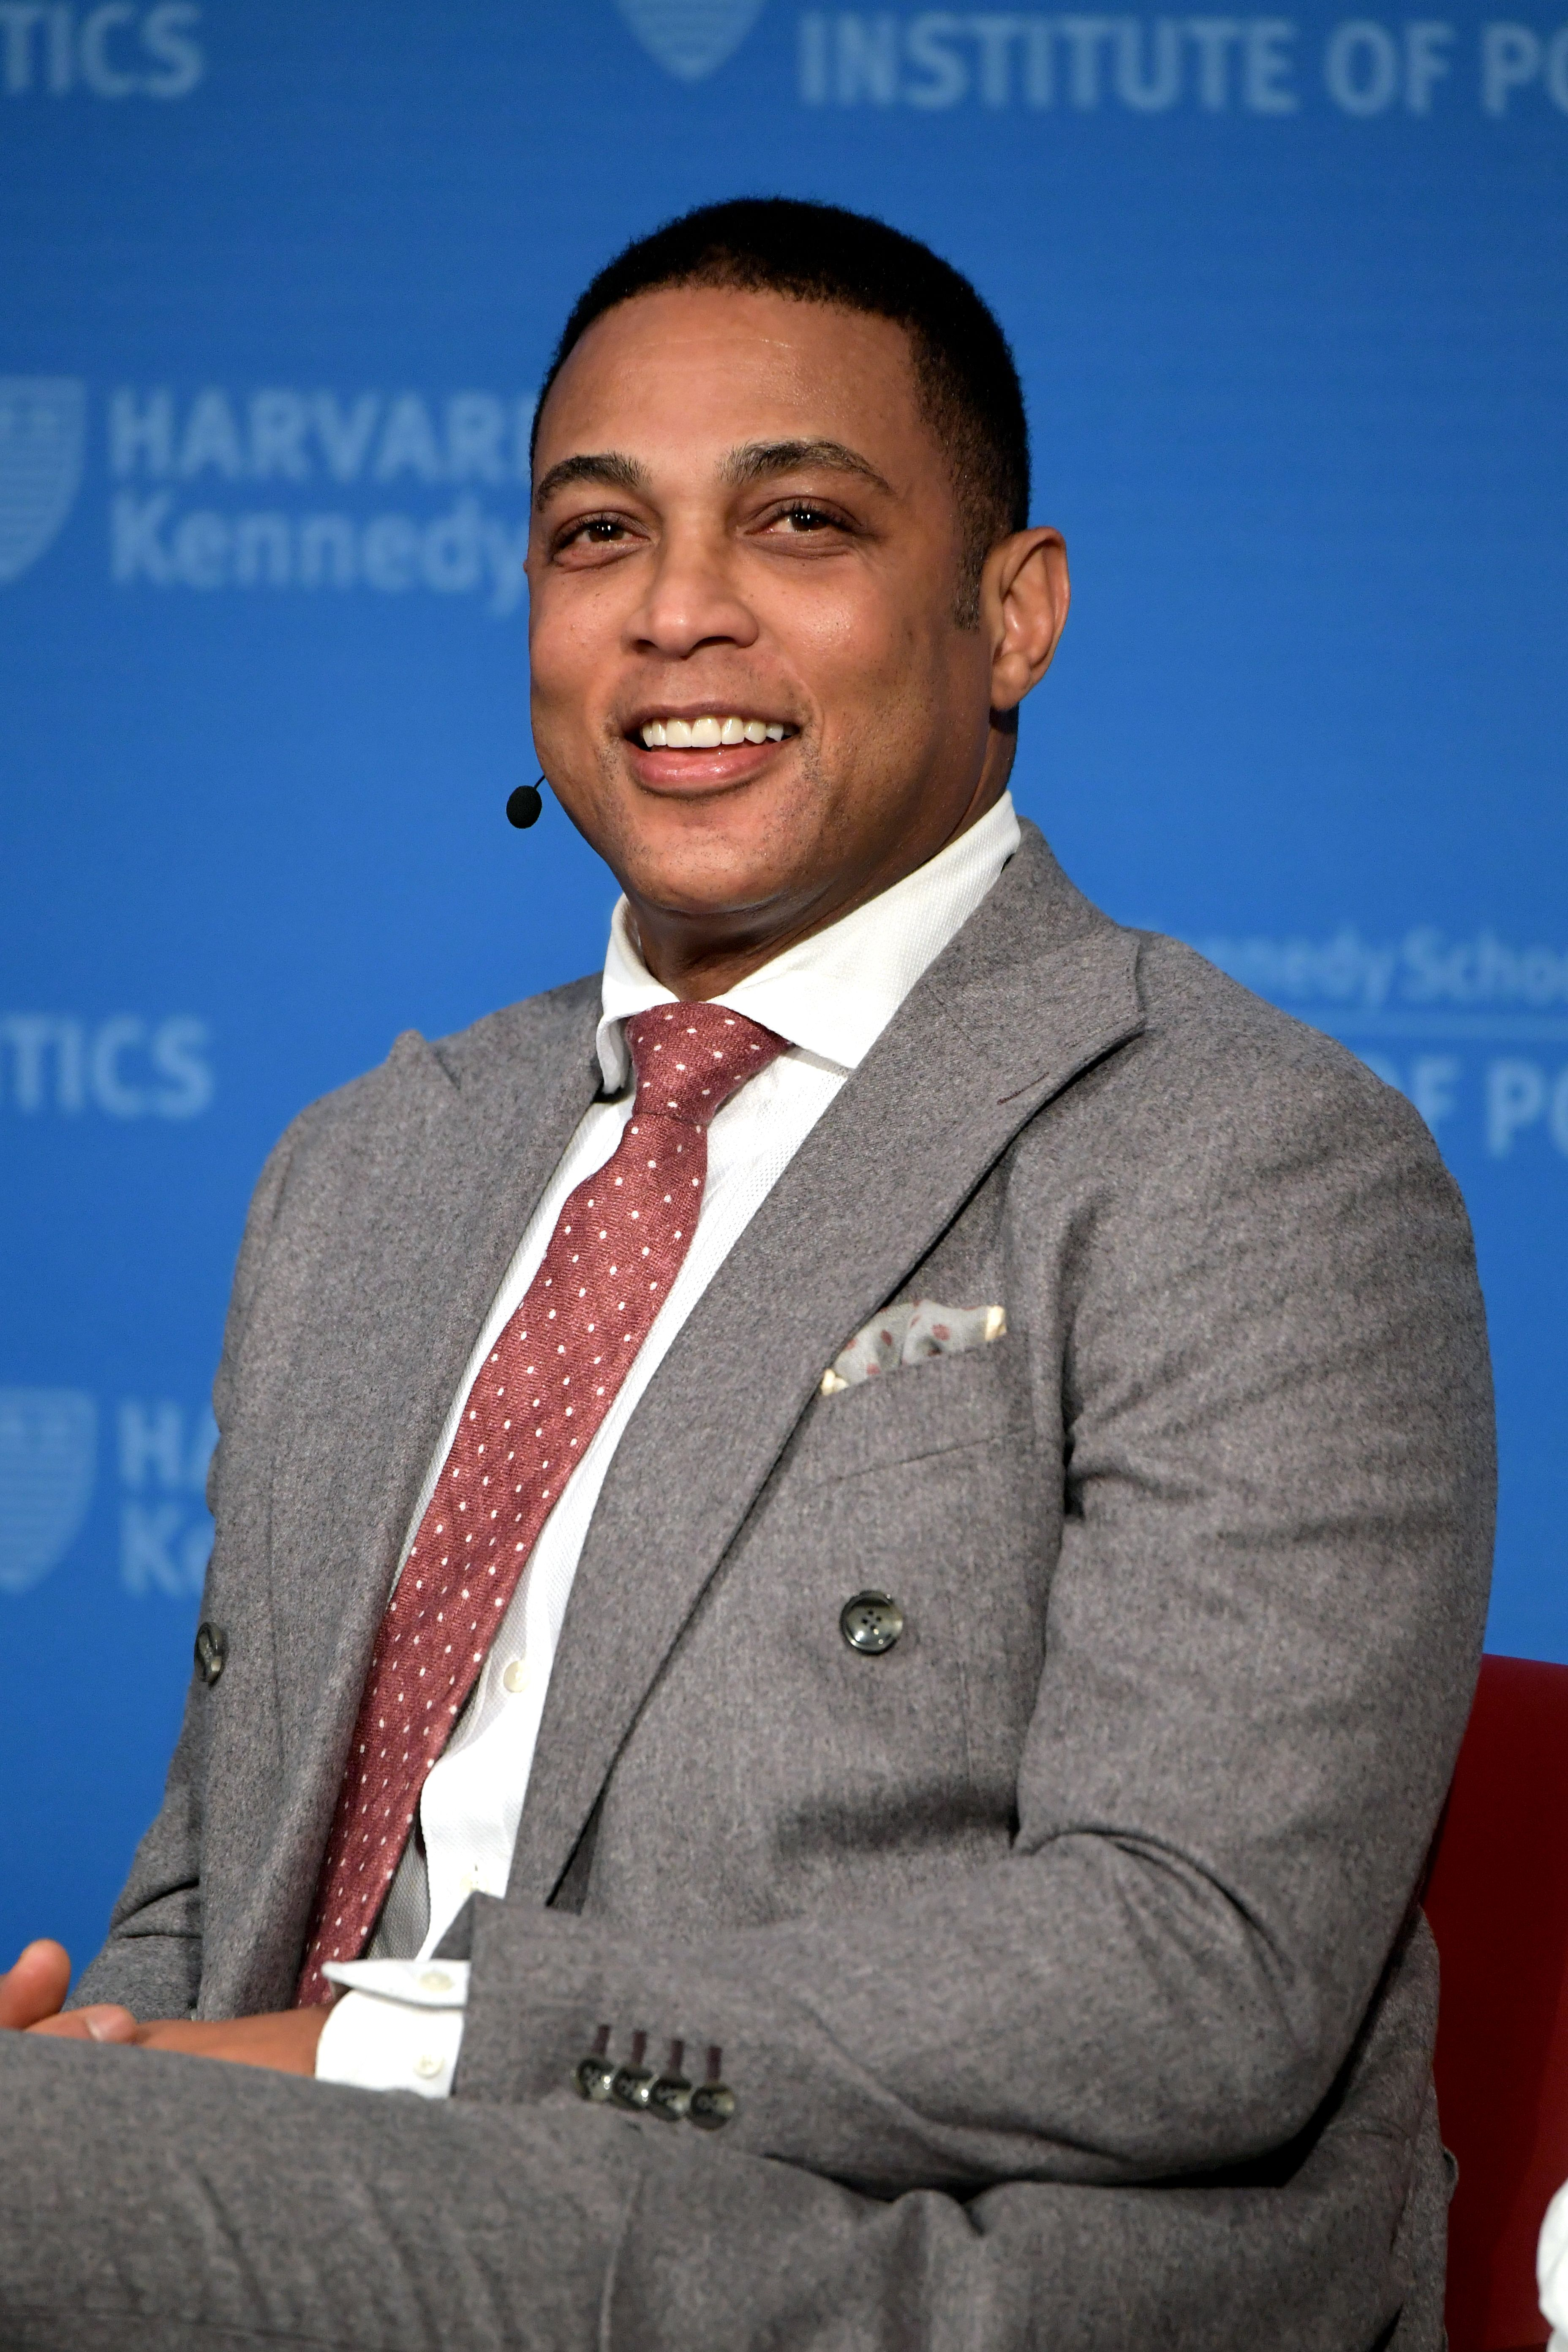 Don Lemon speaks at Harvard University Kennedy School of Government Institute of Politics on February 22, 2019 in Cambridge, Massachusetts. | Source: Getty Images